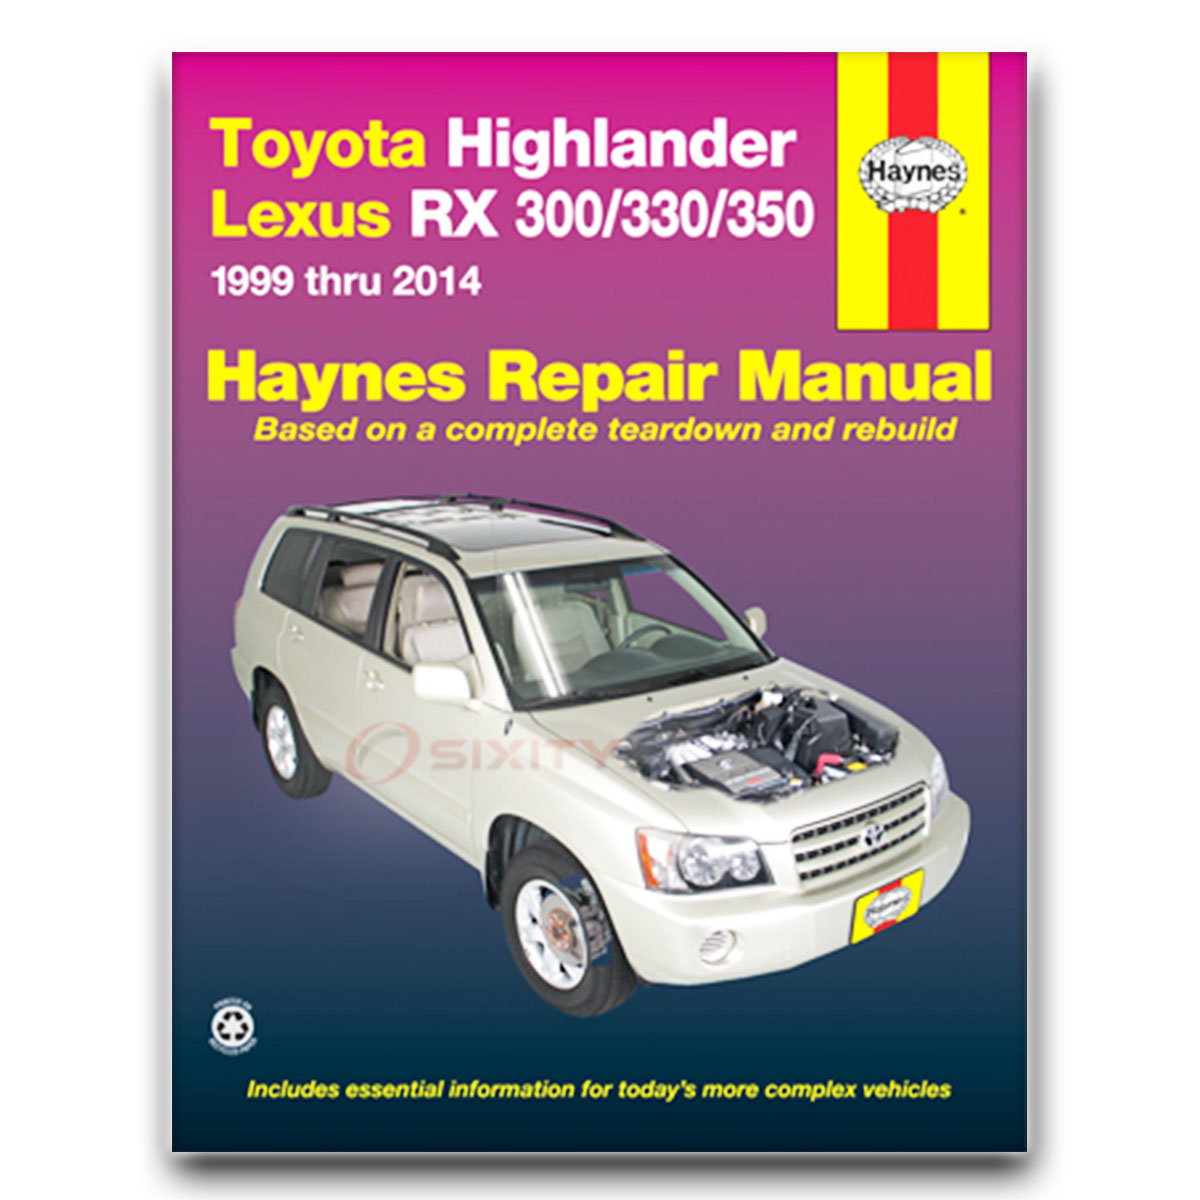 lexus rx300 haynes repair manual base shop service garage book yo ebay rh ebay com lexus rx 300 owners manual lexus rx 300 owners manual